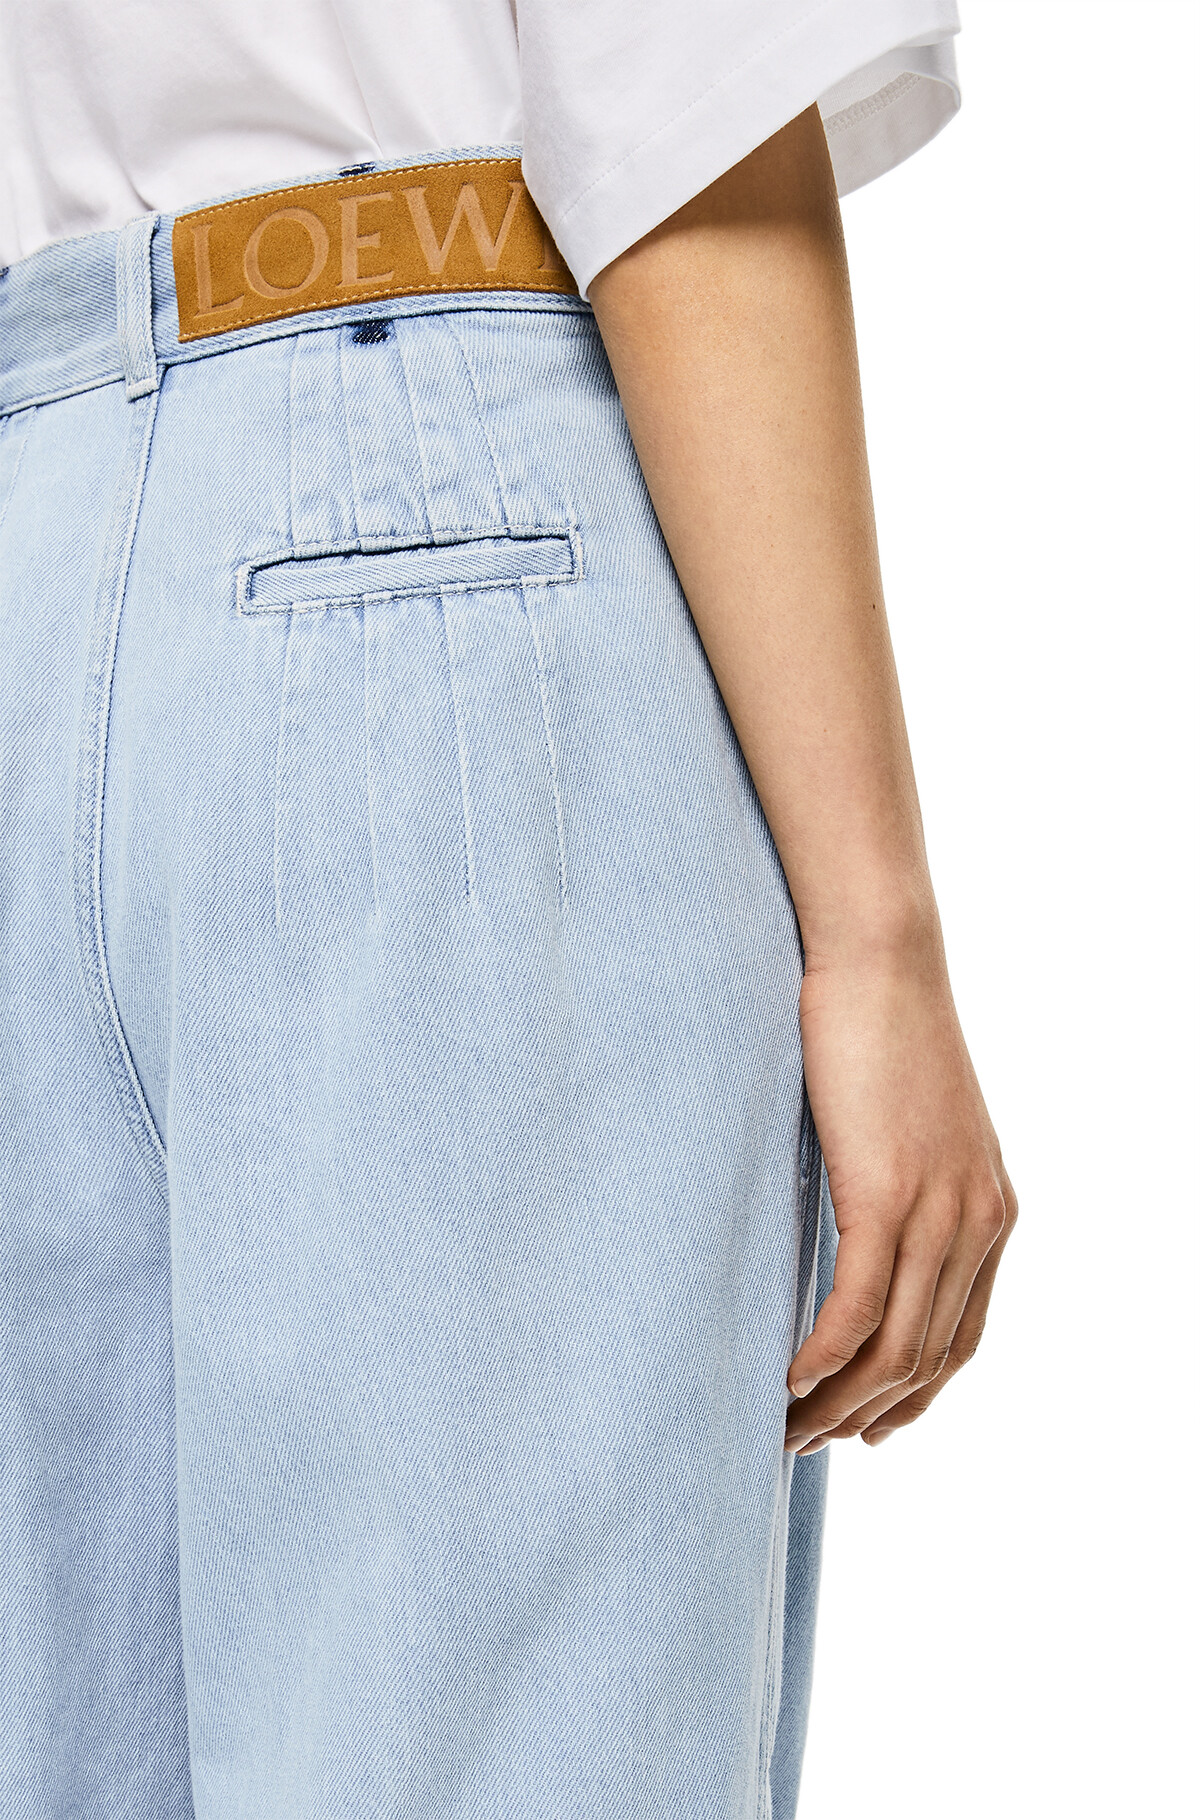 LOEWE Cropped Baloon Denim Pants Light Blue front